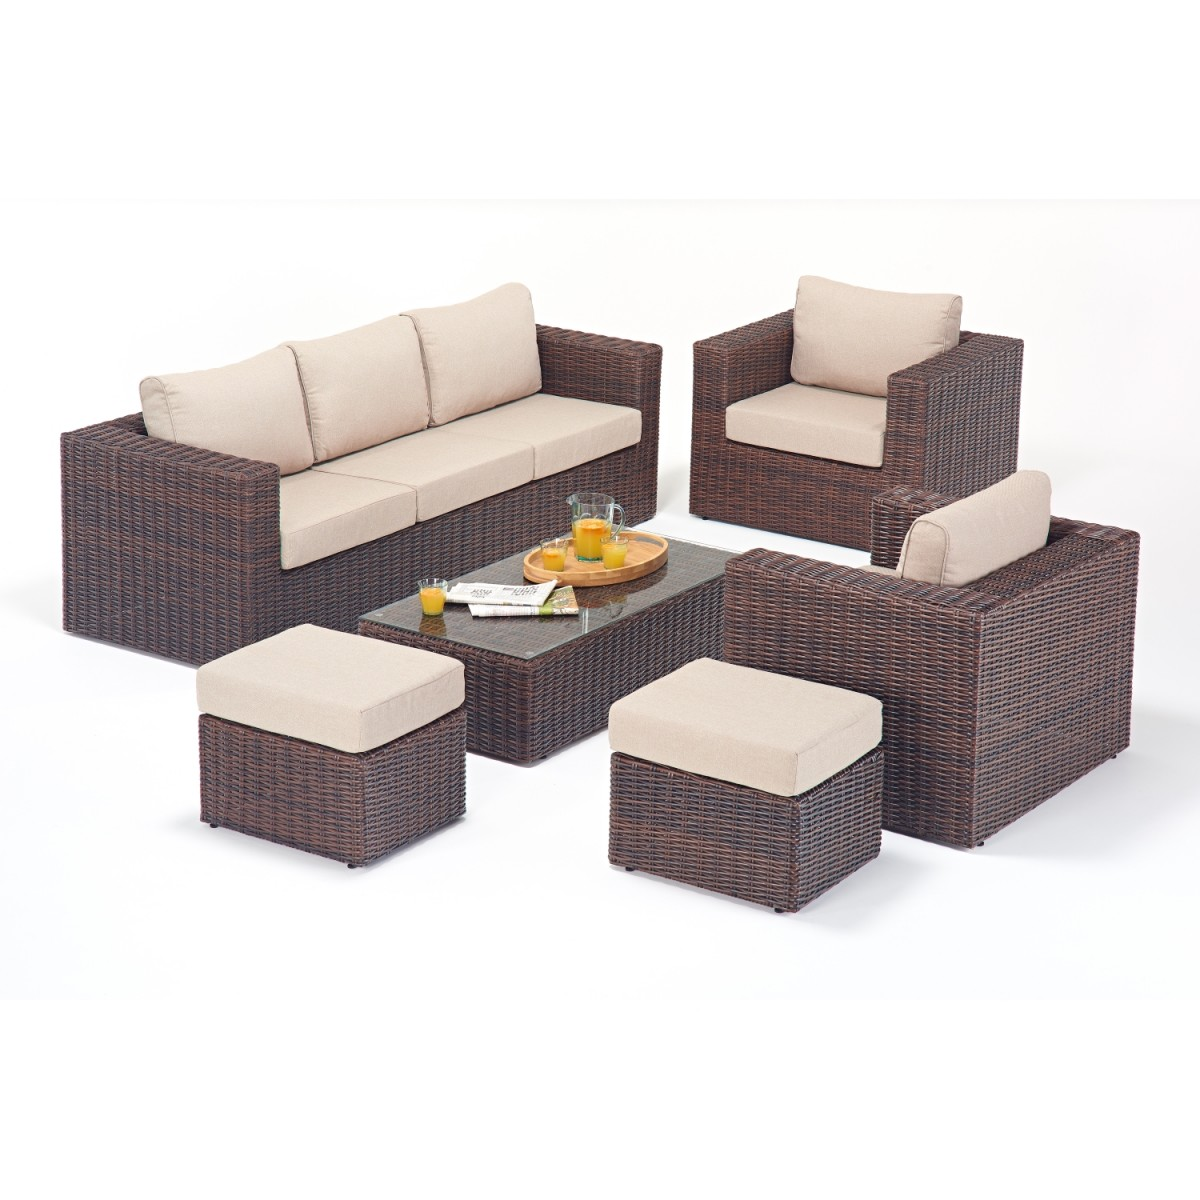 rattan sets windsor large sofa set wgf 2706. Black Bedroom Furniture Sets. Home Design Ideas